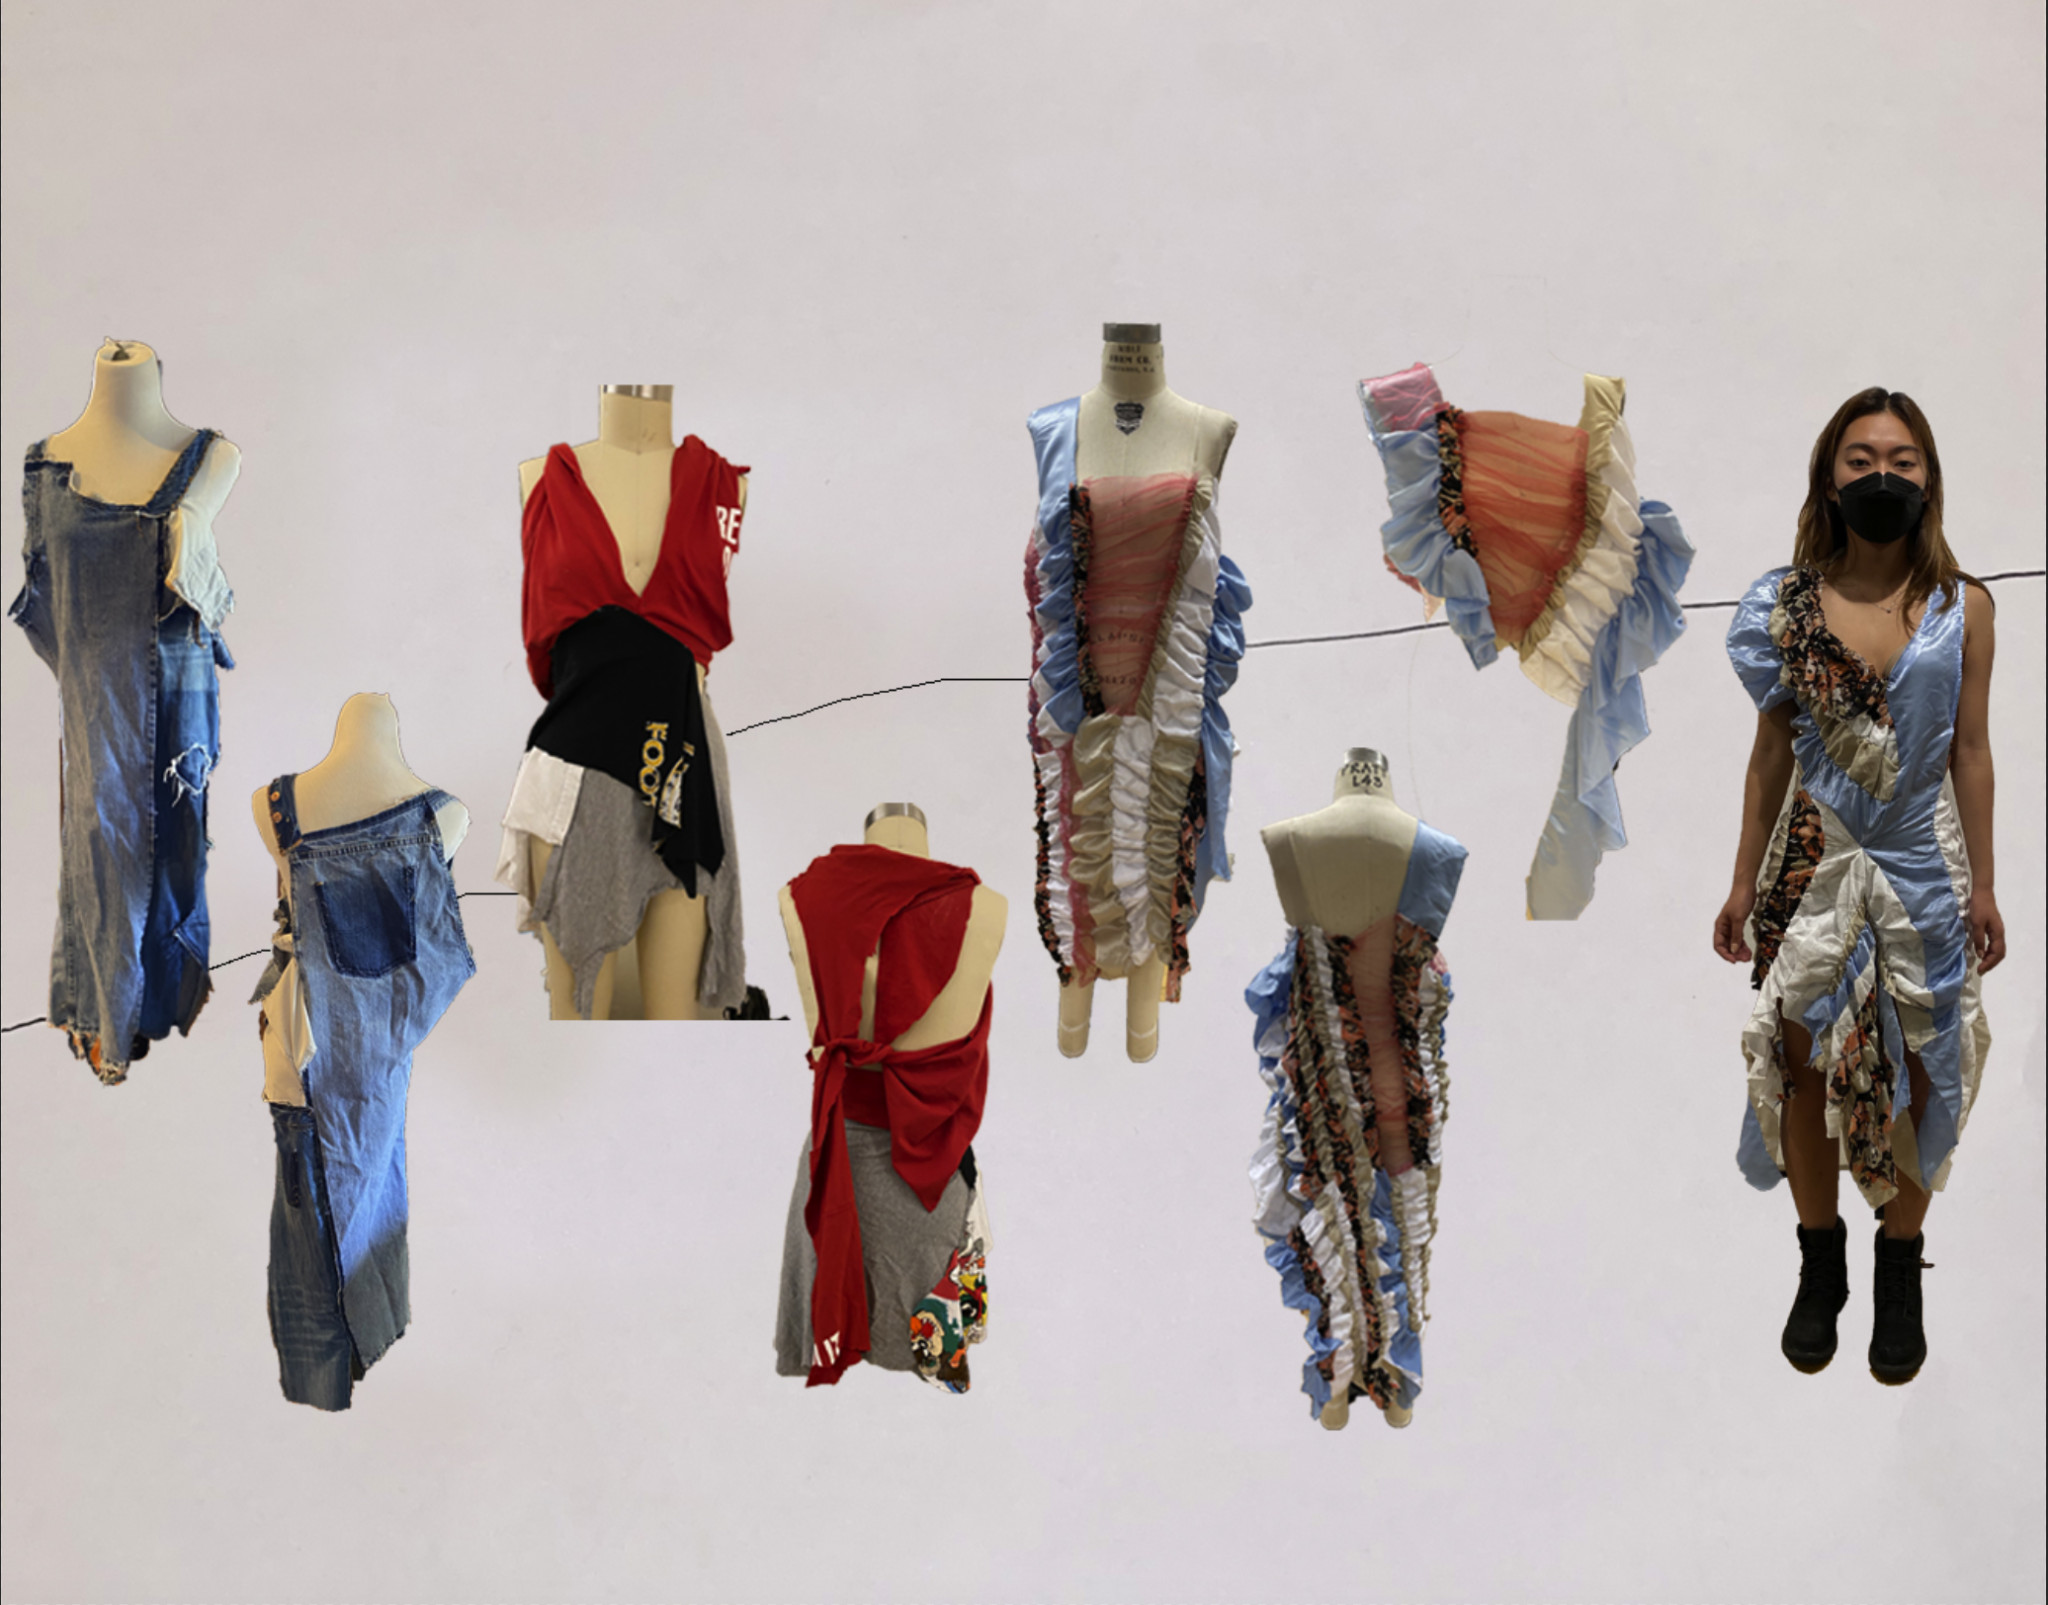 Garments at various stages of construction